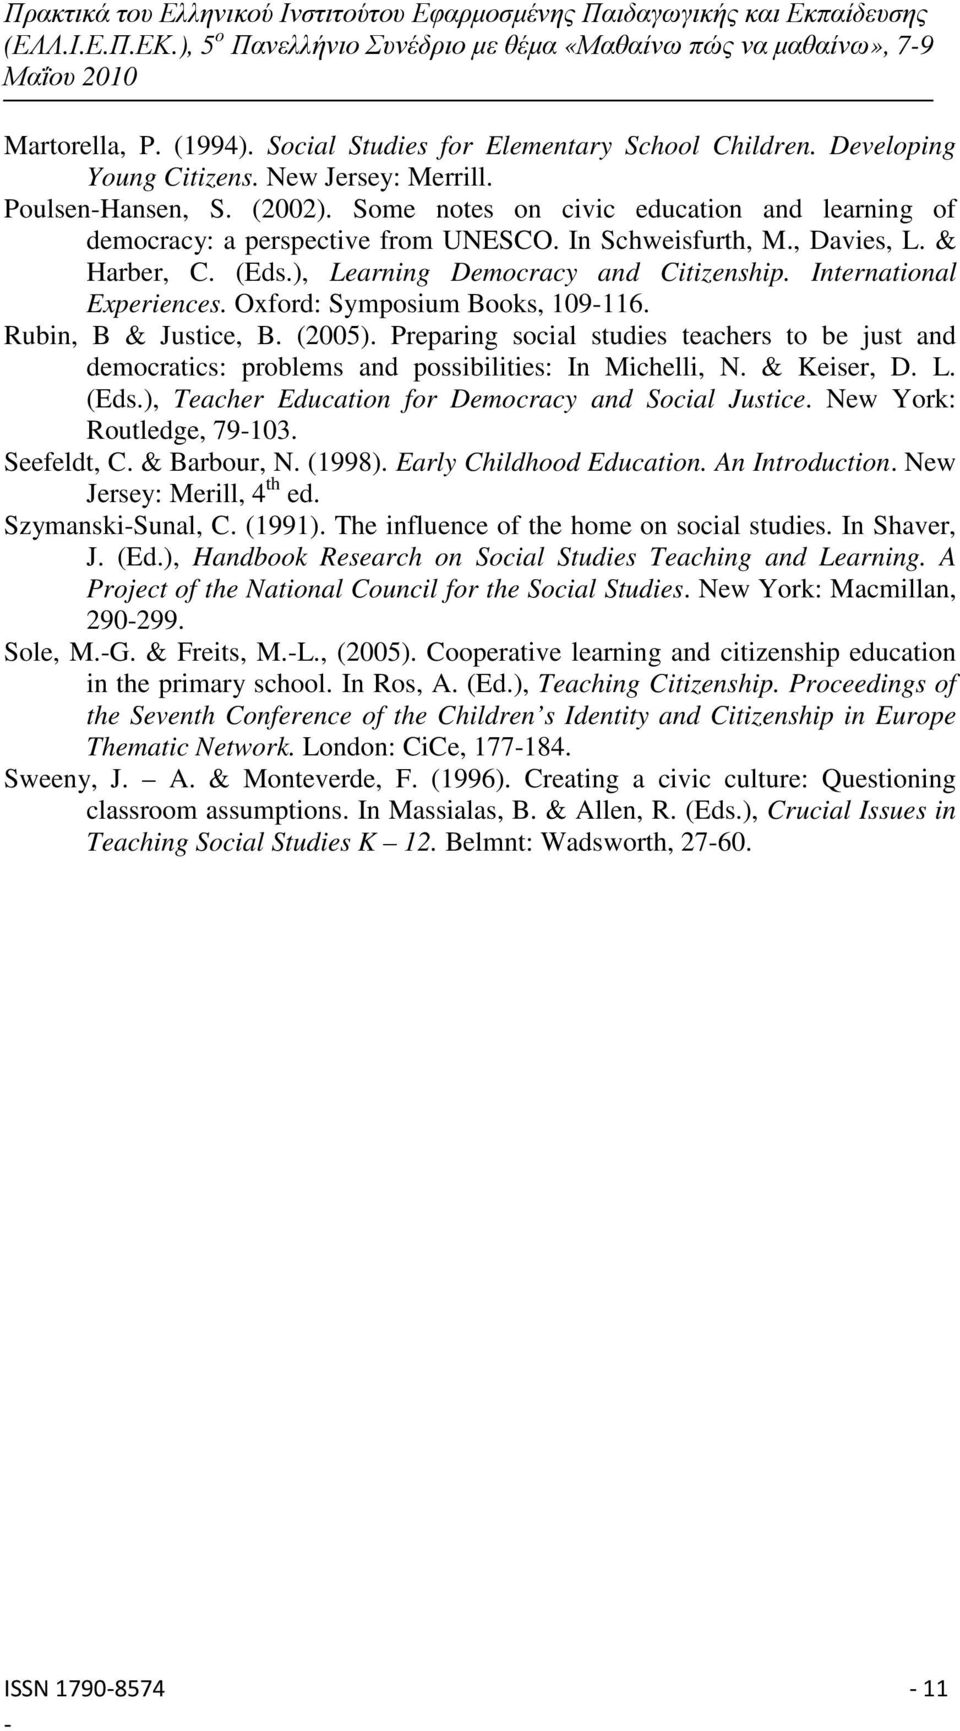 Oxford: Symposium Books, 109-116. Rubin, B & Justice, B. (2005). Preparing social studies teachers to be just and democratics: problems and possibilities: In Michelli, N. & Keiser, D. L. (Eds.